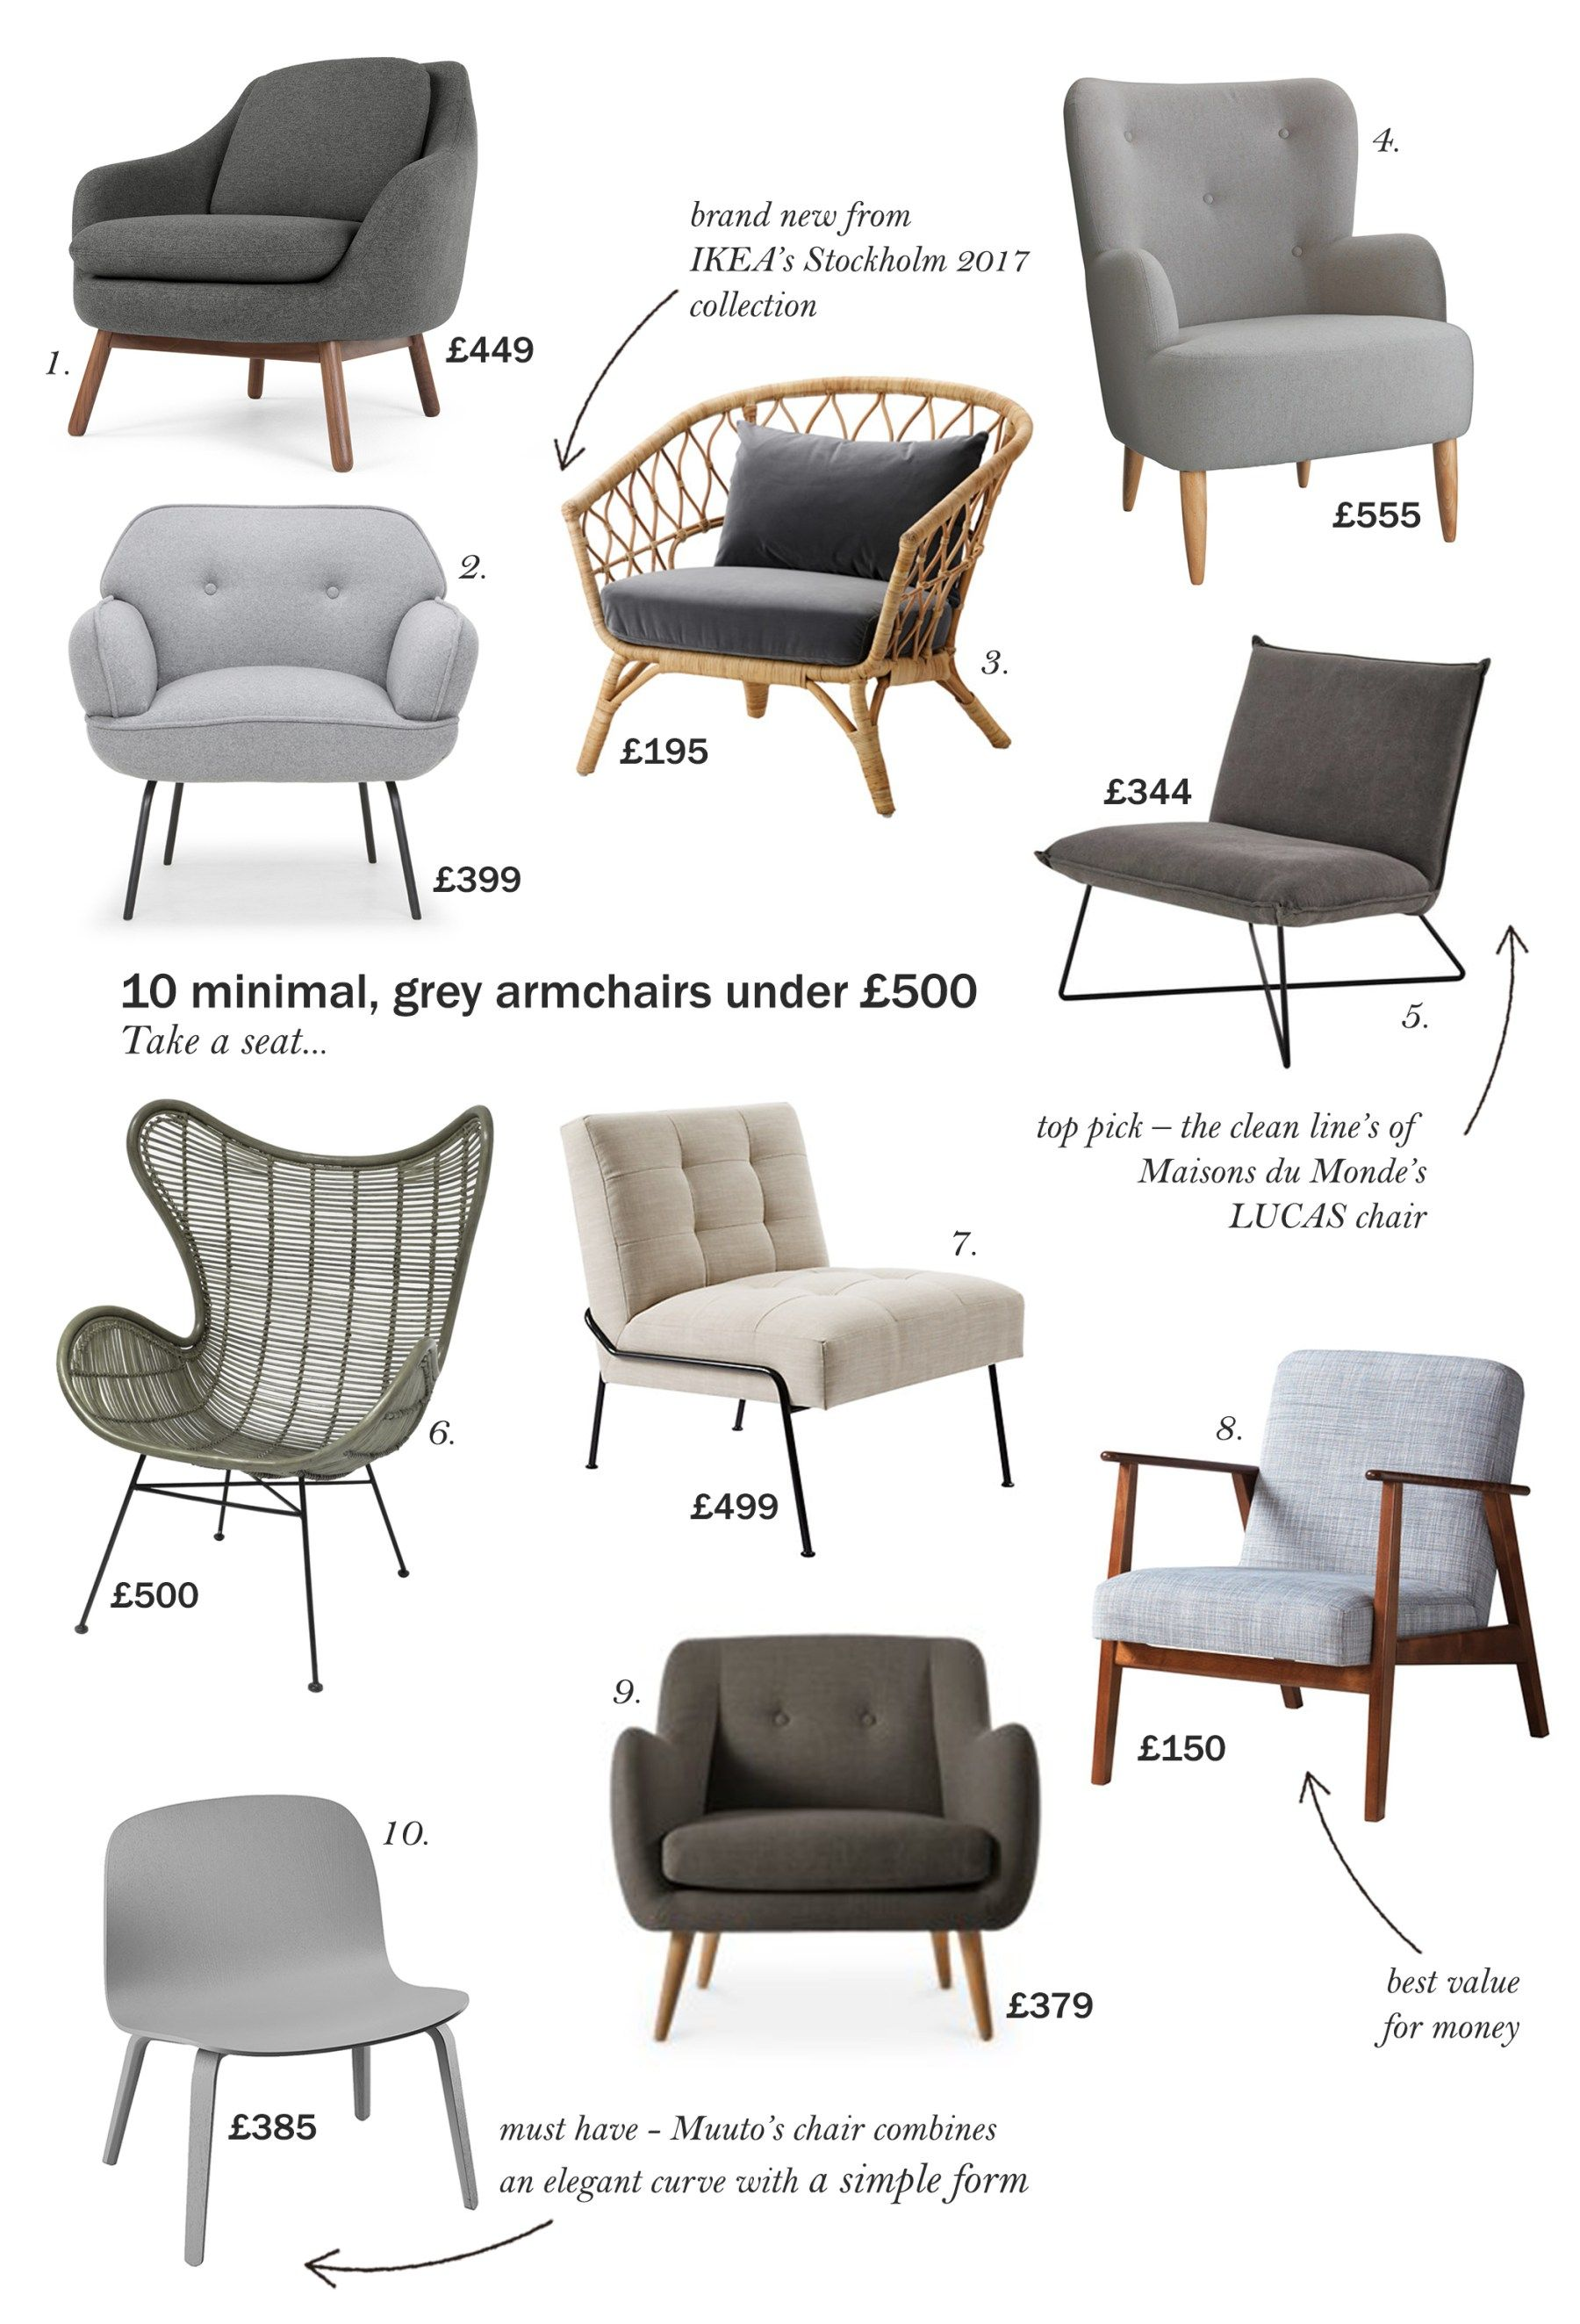 Superb 10 Minimal Scandinavian Style Armchairs For Under 500 Ocoug Best Dining Table And Chair Ideas Images Ocougorg